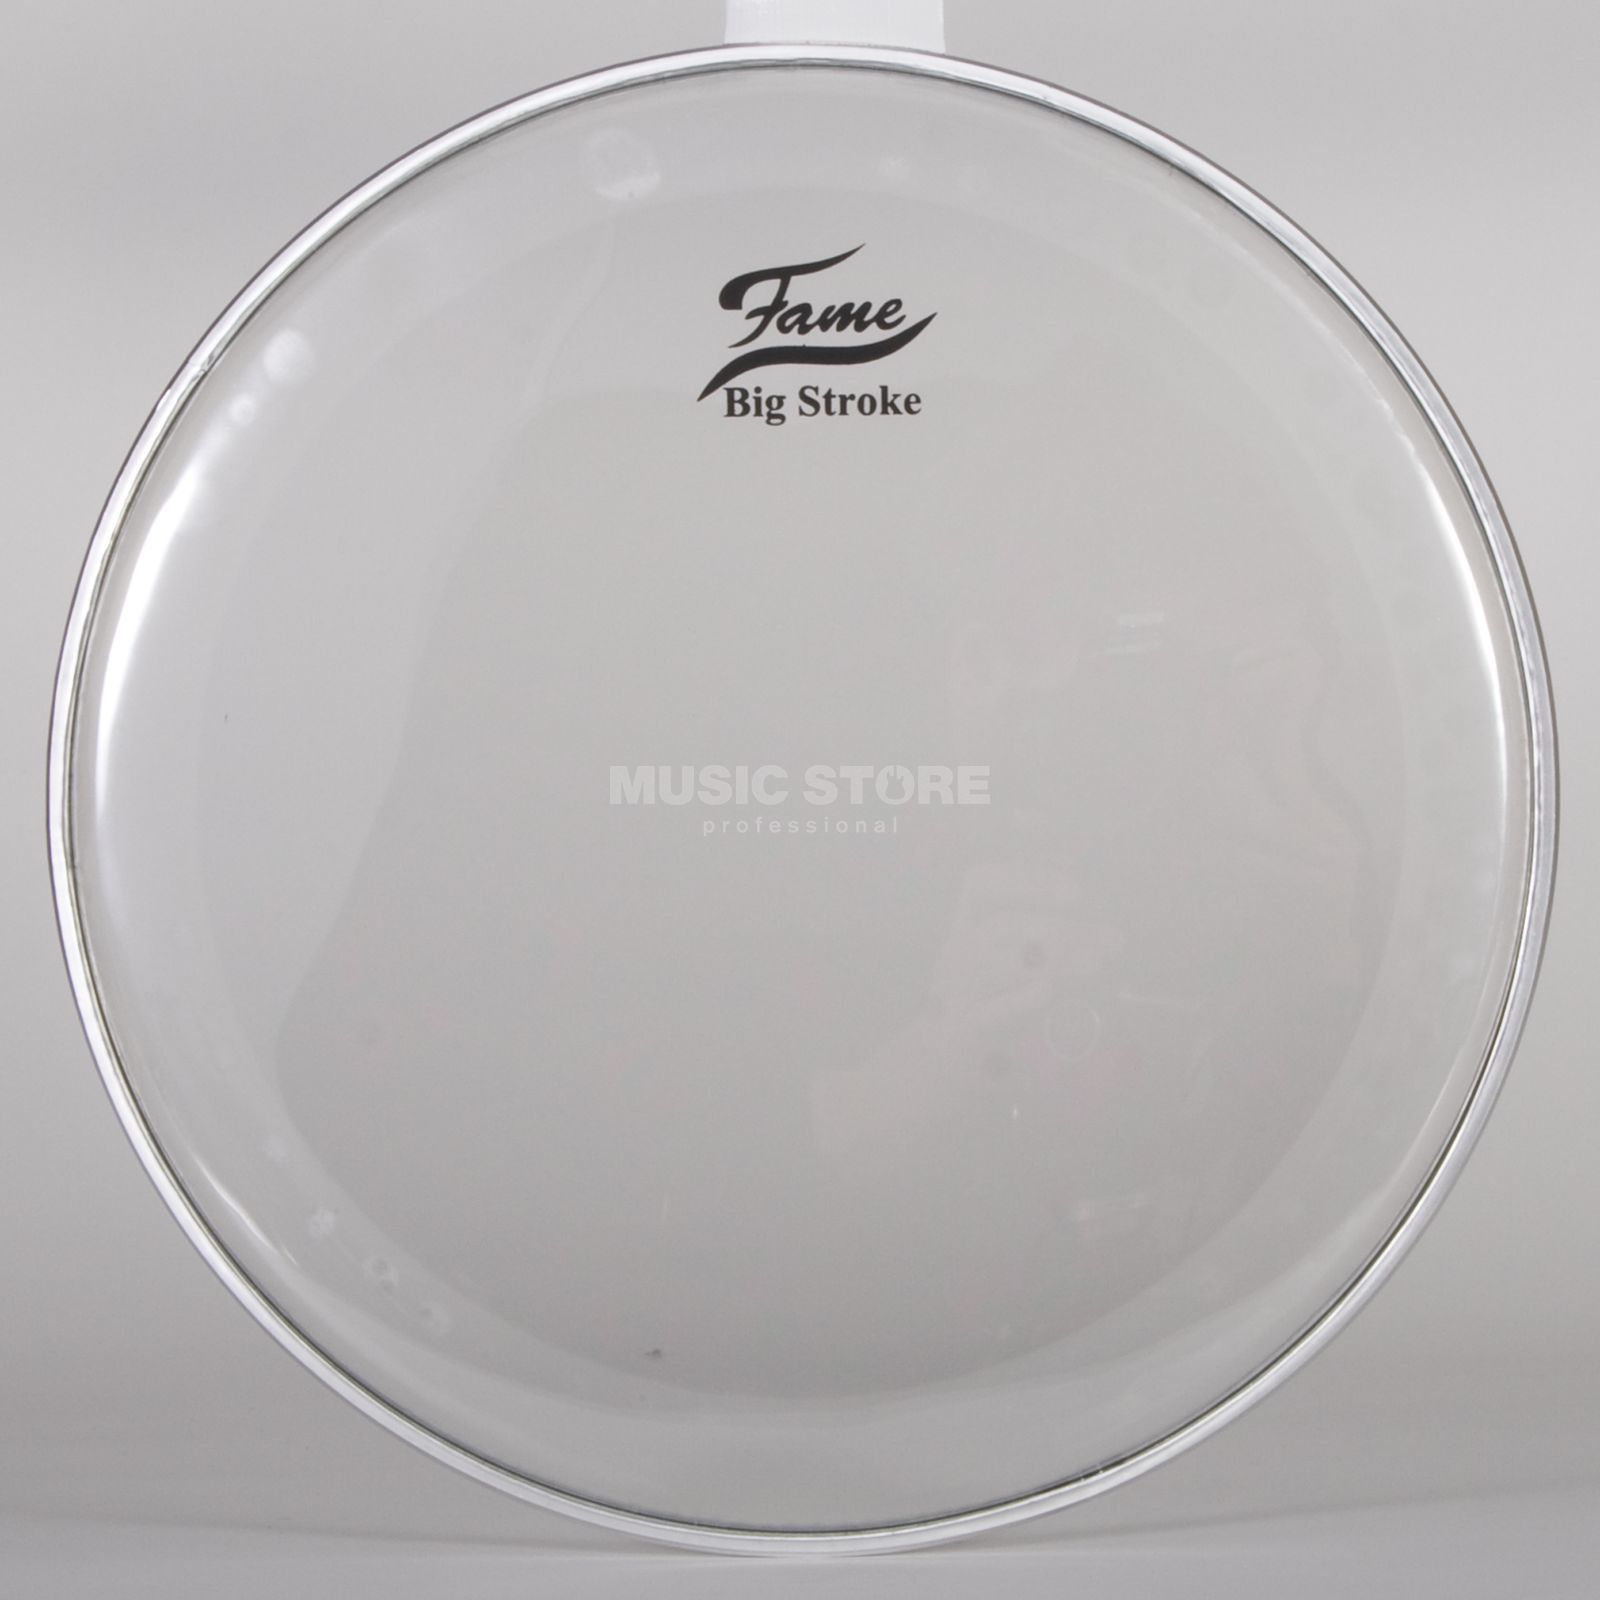 "Fame Tomvel Big Stroke, 8"", Hydraulic, clear Productafbeelding"